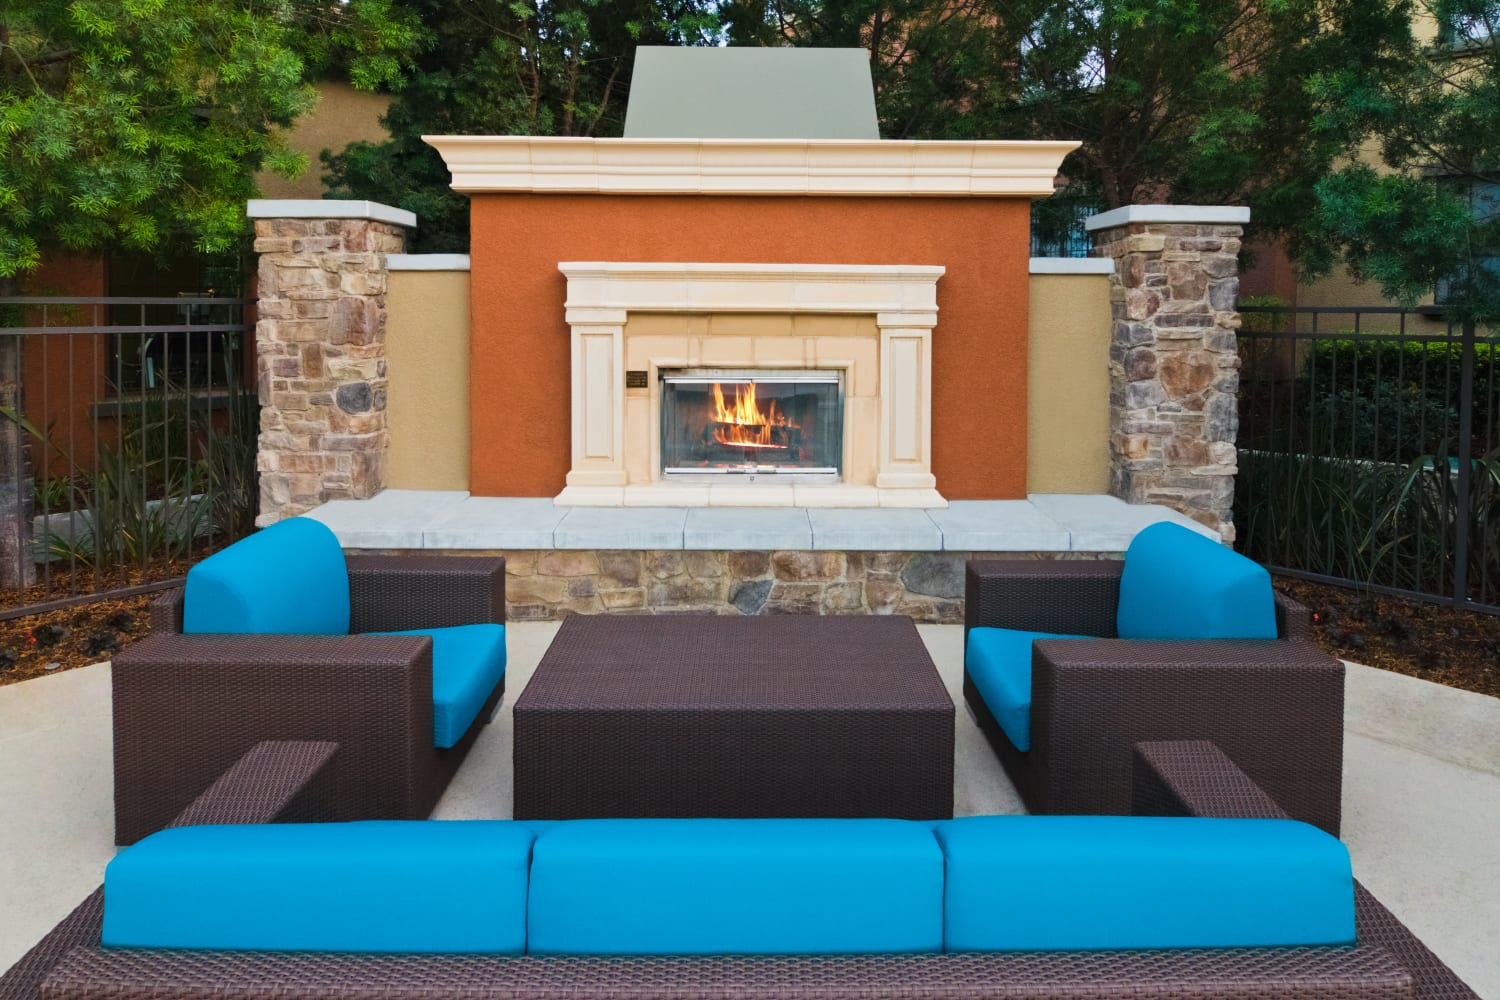 Outdoor fireplace at Links at Westridge in Valencia, California